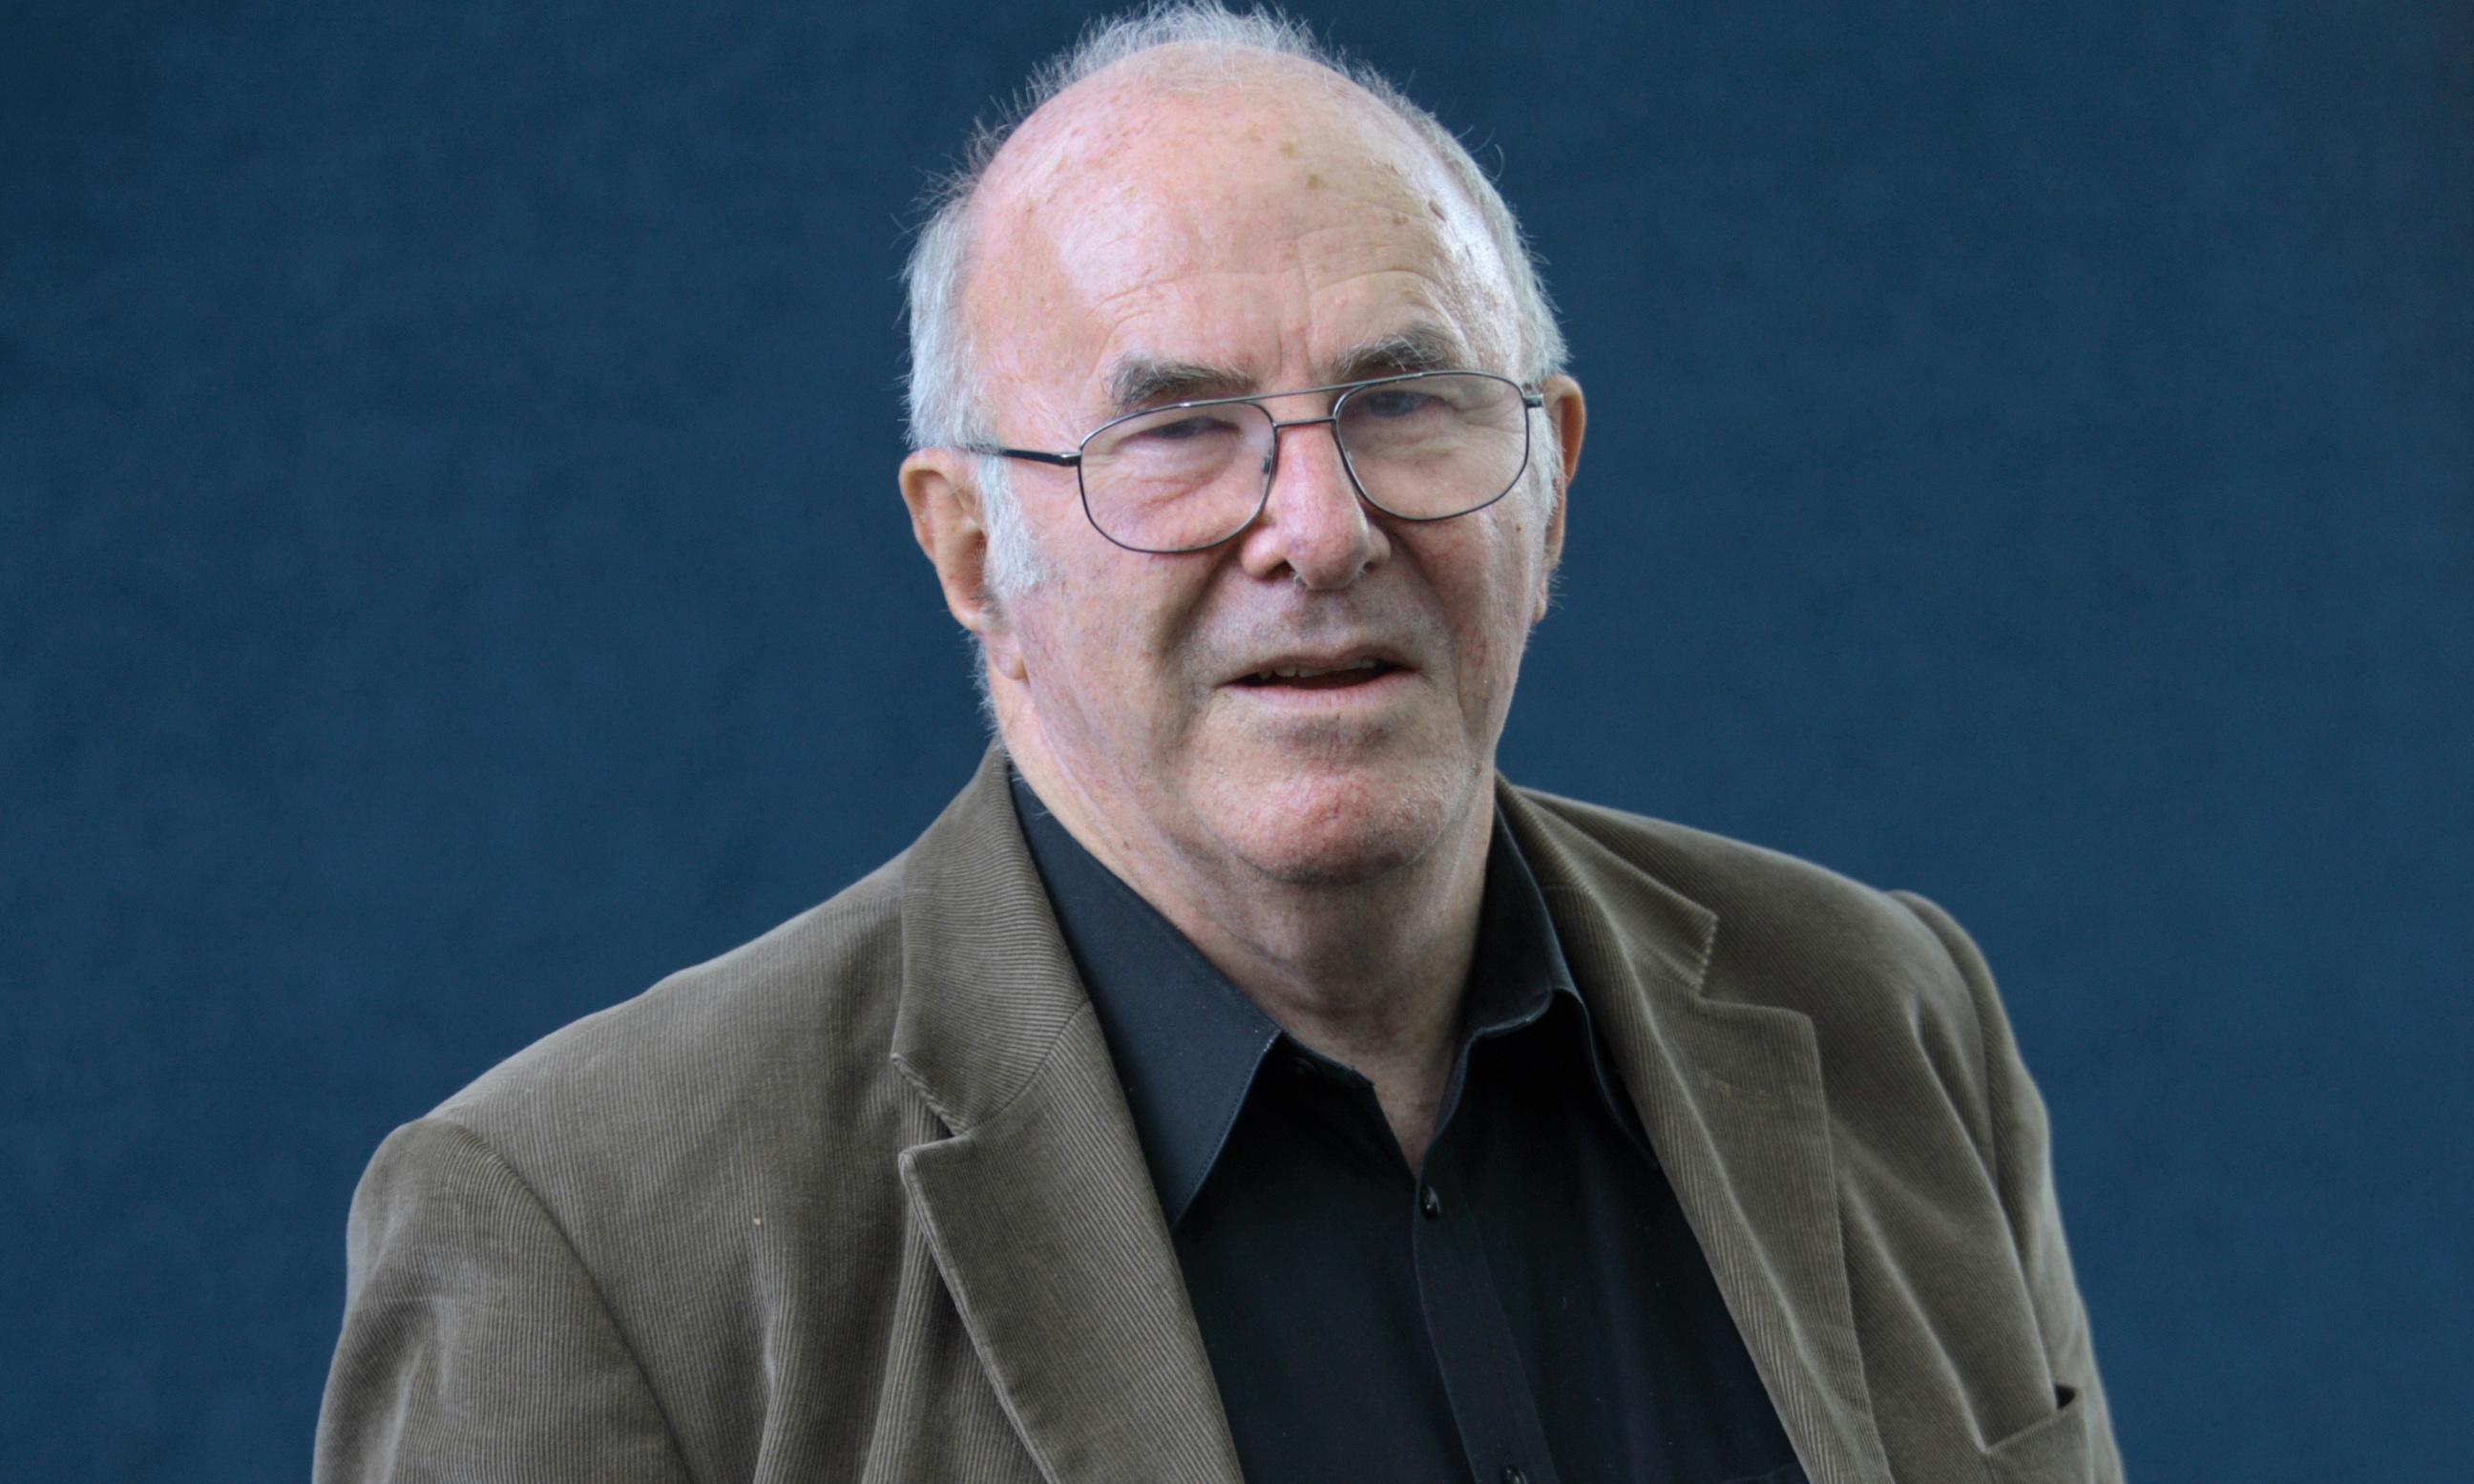 'Clive James would have been a national treasure if only he'd taken himself more seriously'